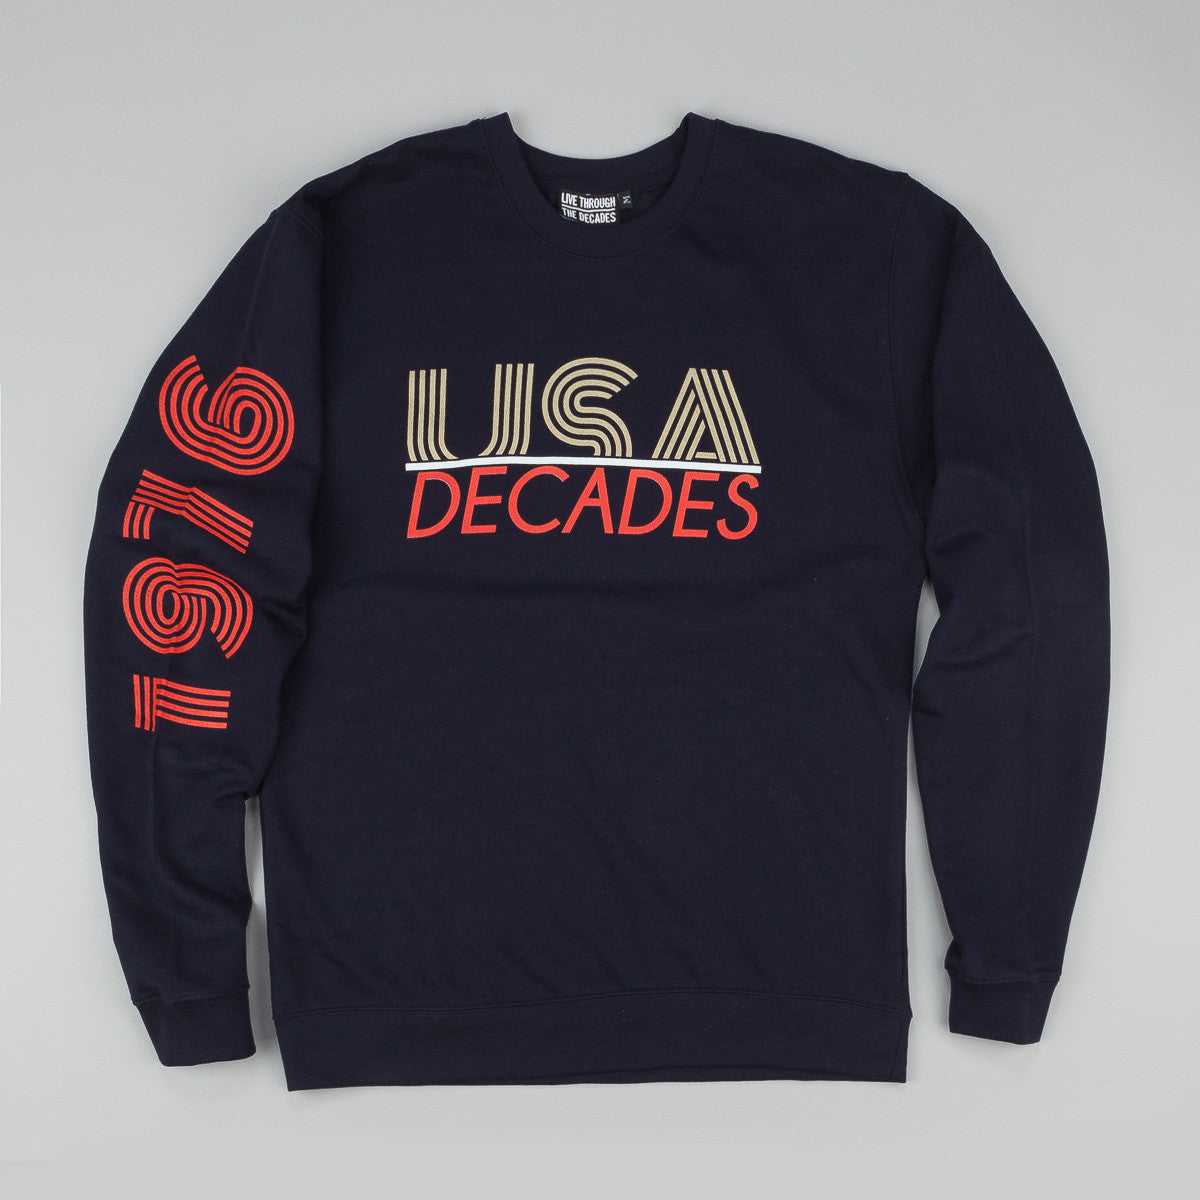 The Decades 'Team USA' Crew Neck Sweatshirt - Navy